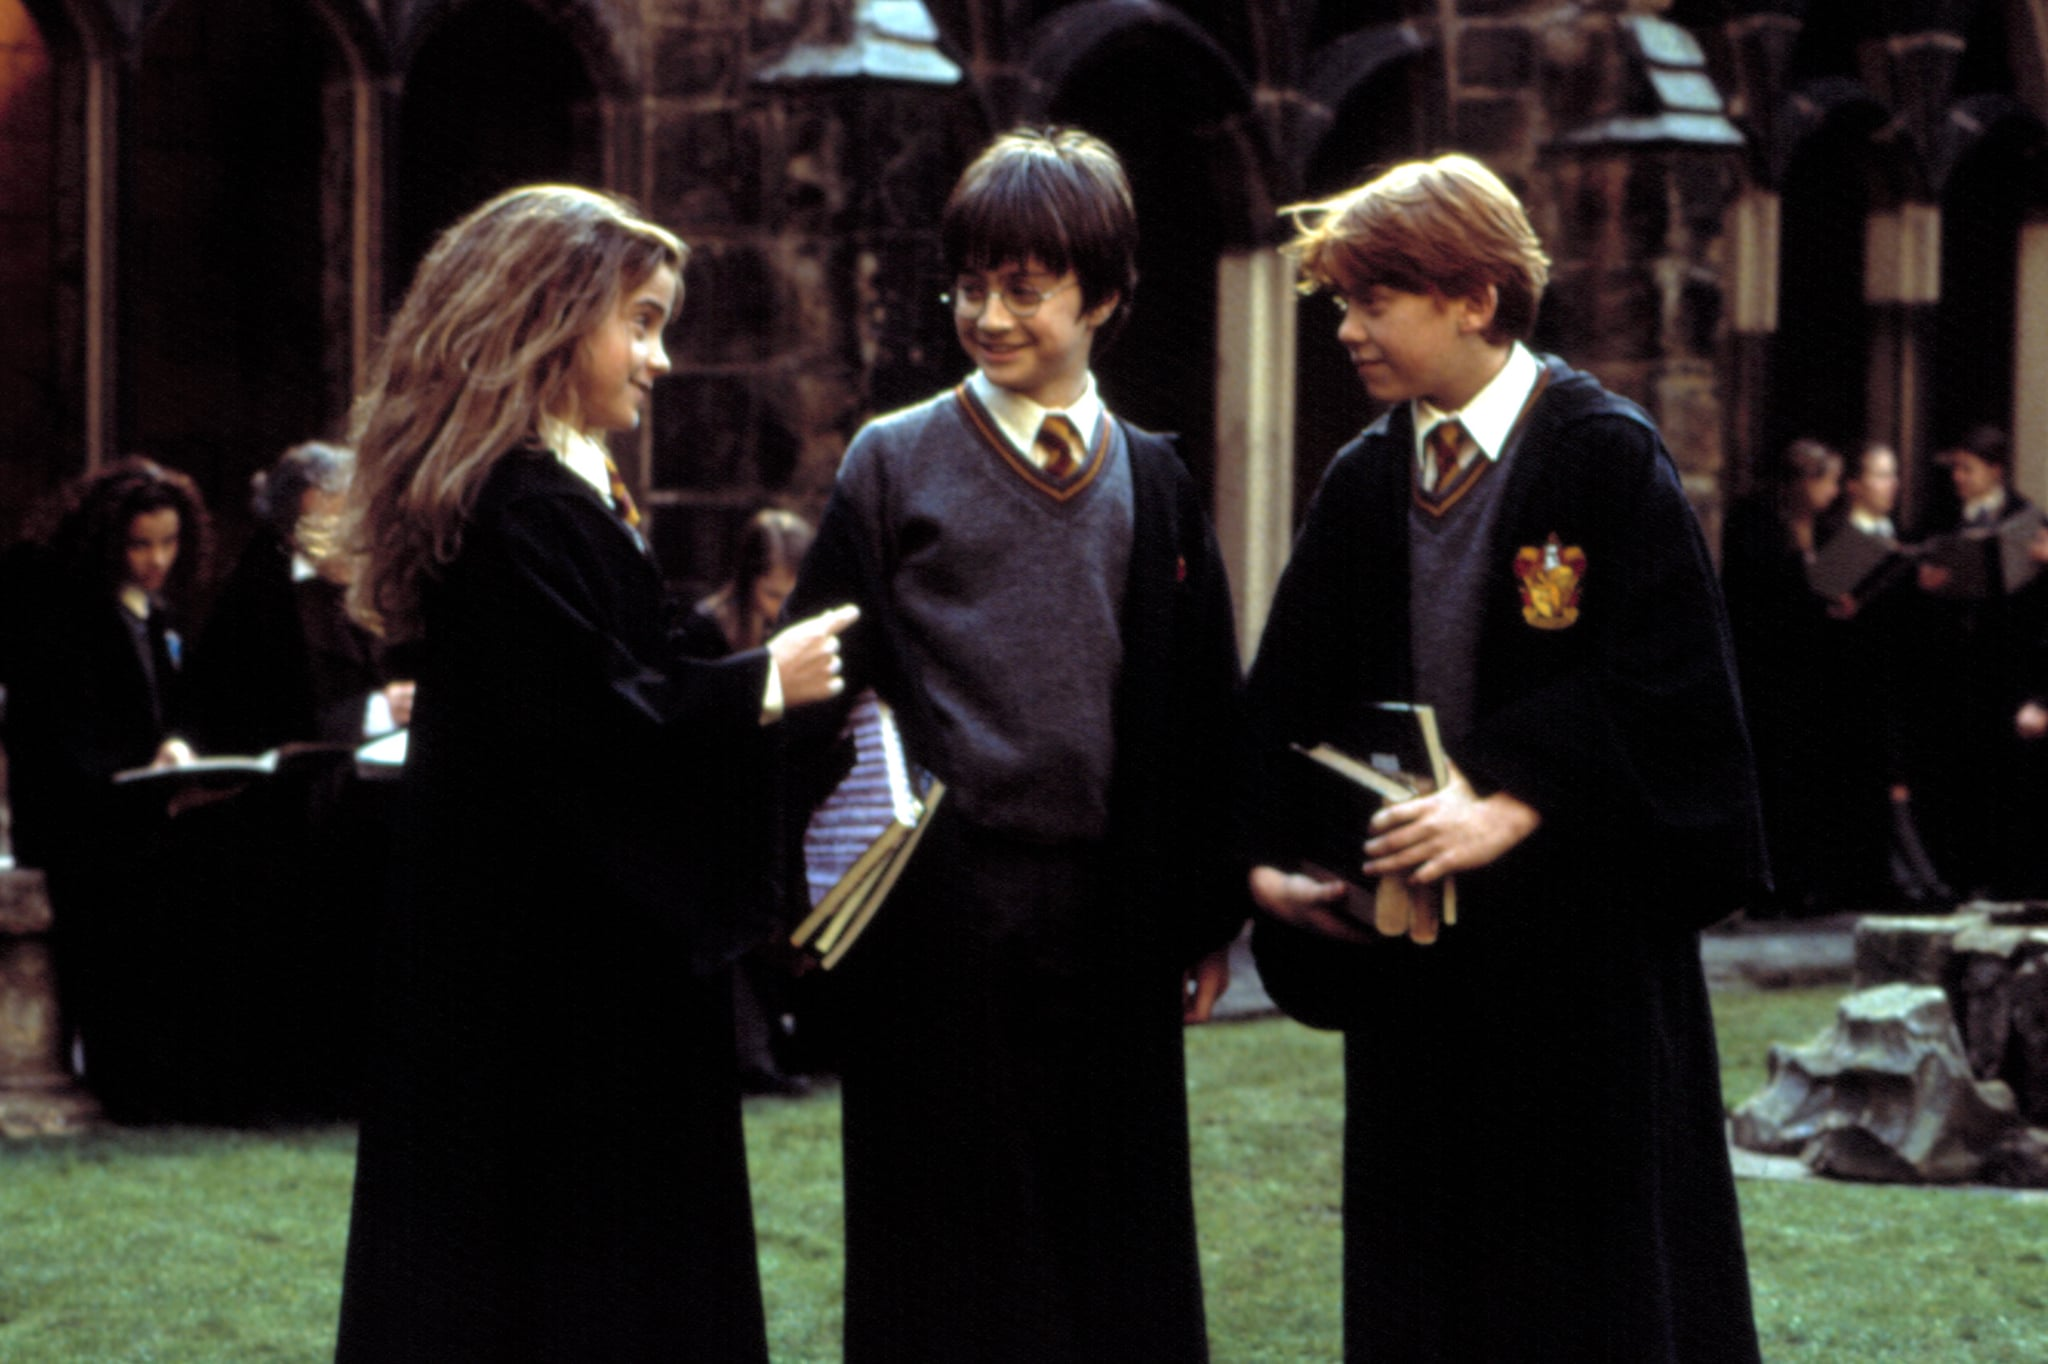 Harry Potter  films set in school